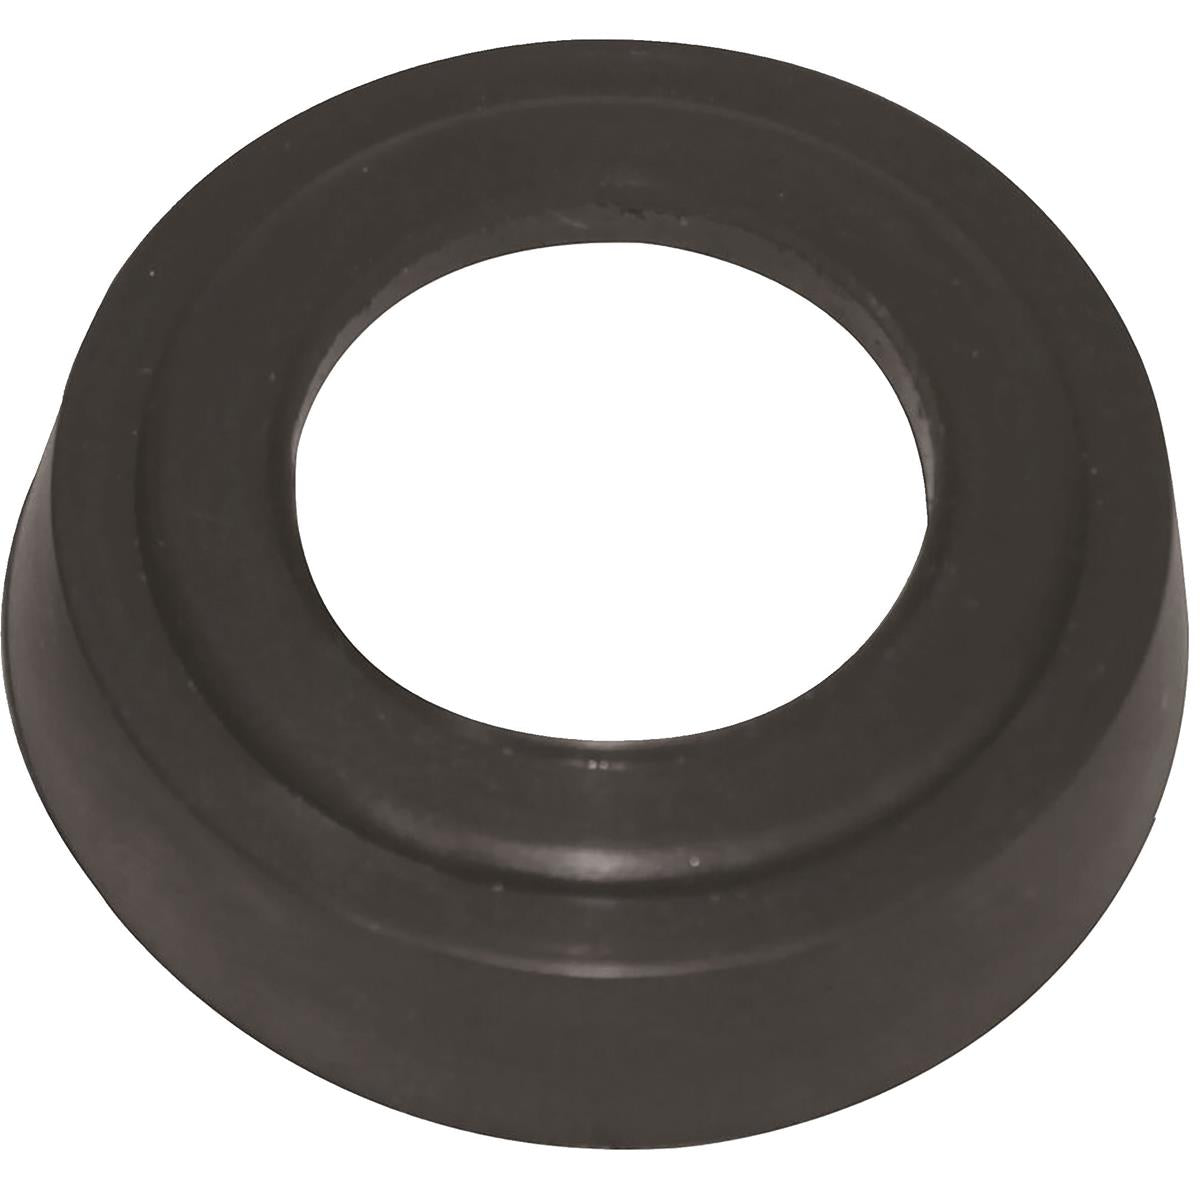 Jacto® Sprayer Replacement Viton® Piston Cup